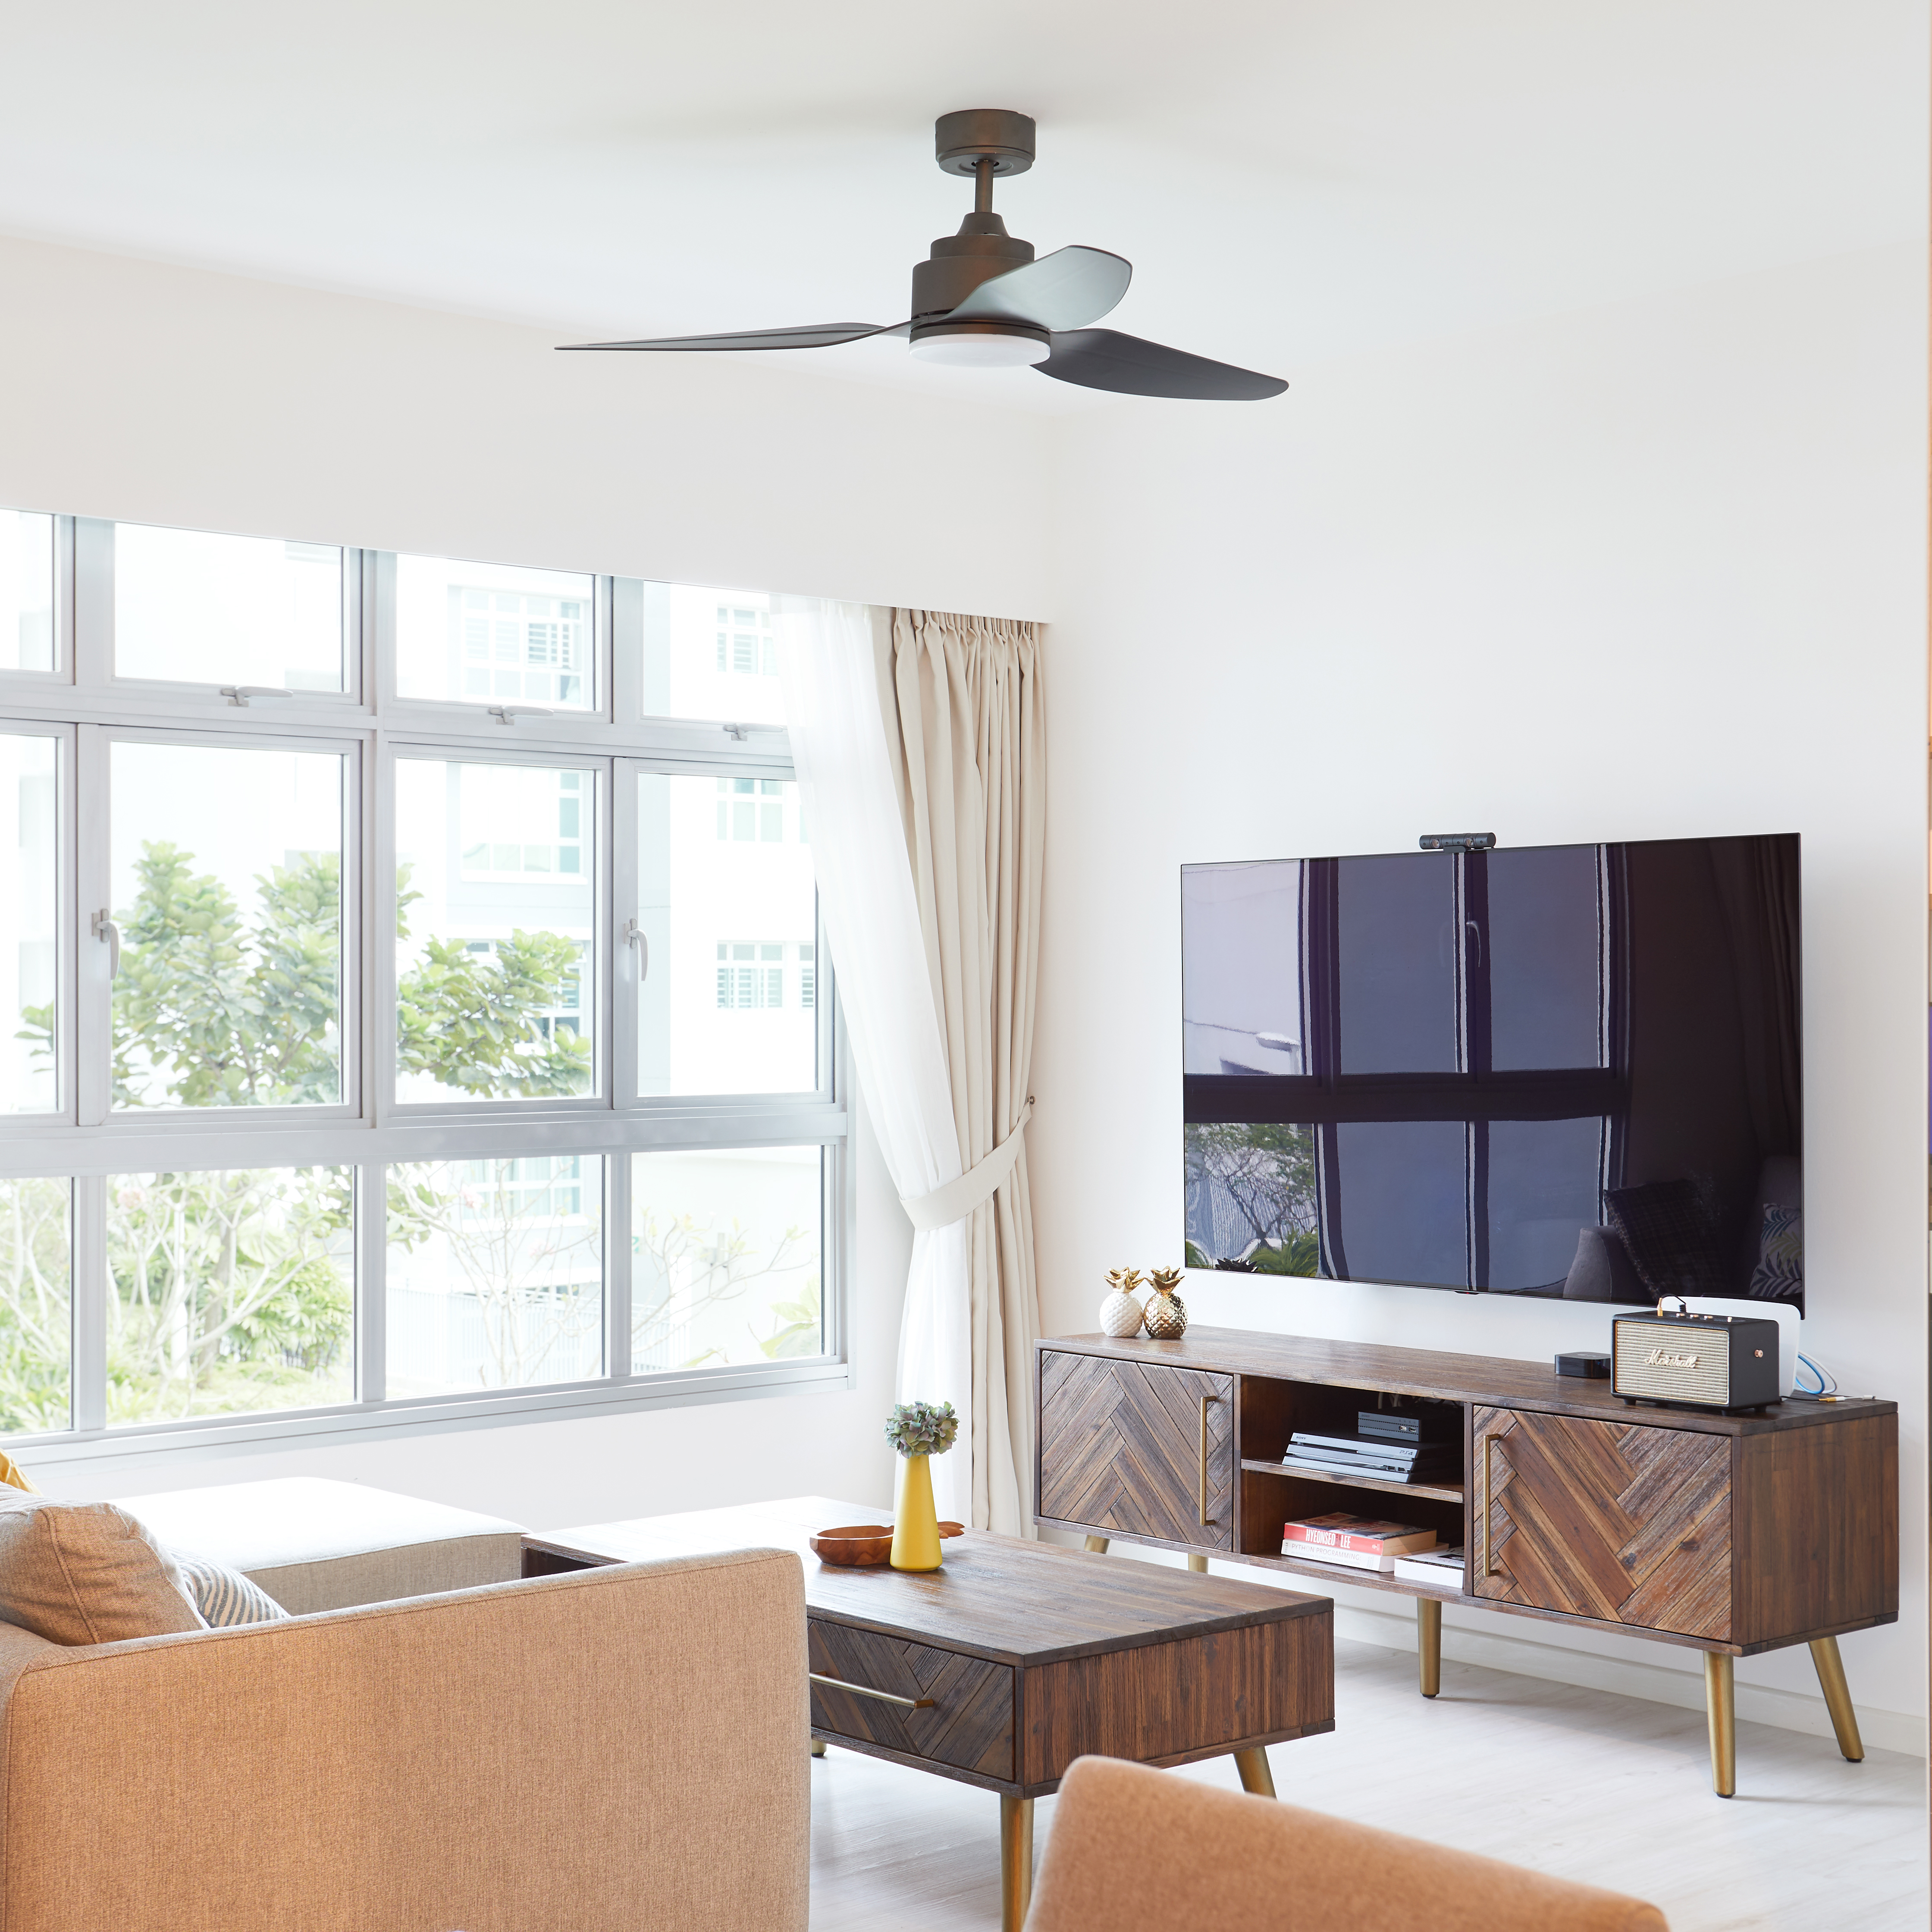 Modern Style Home - Telok Blangah Heights | Product Seen: [Xander TV Console - W1650 & Xander Coffee Table - W1200]